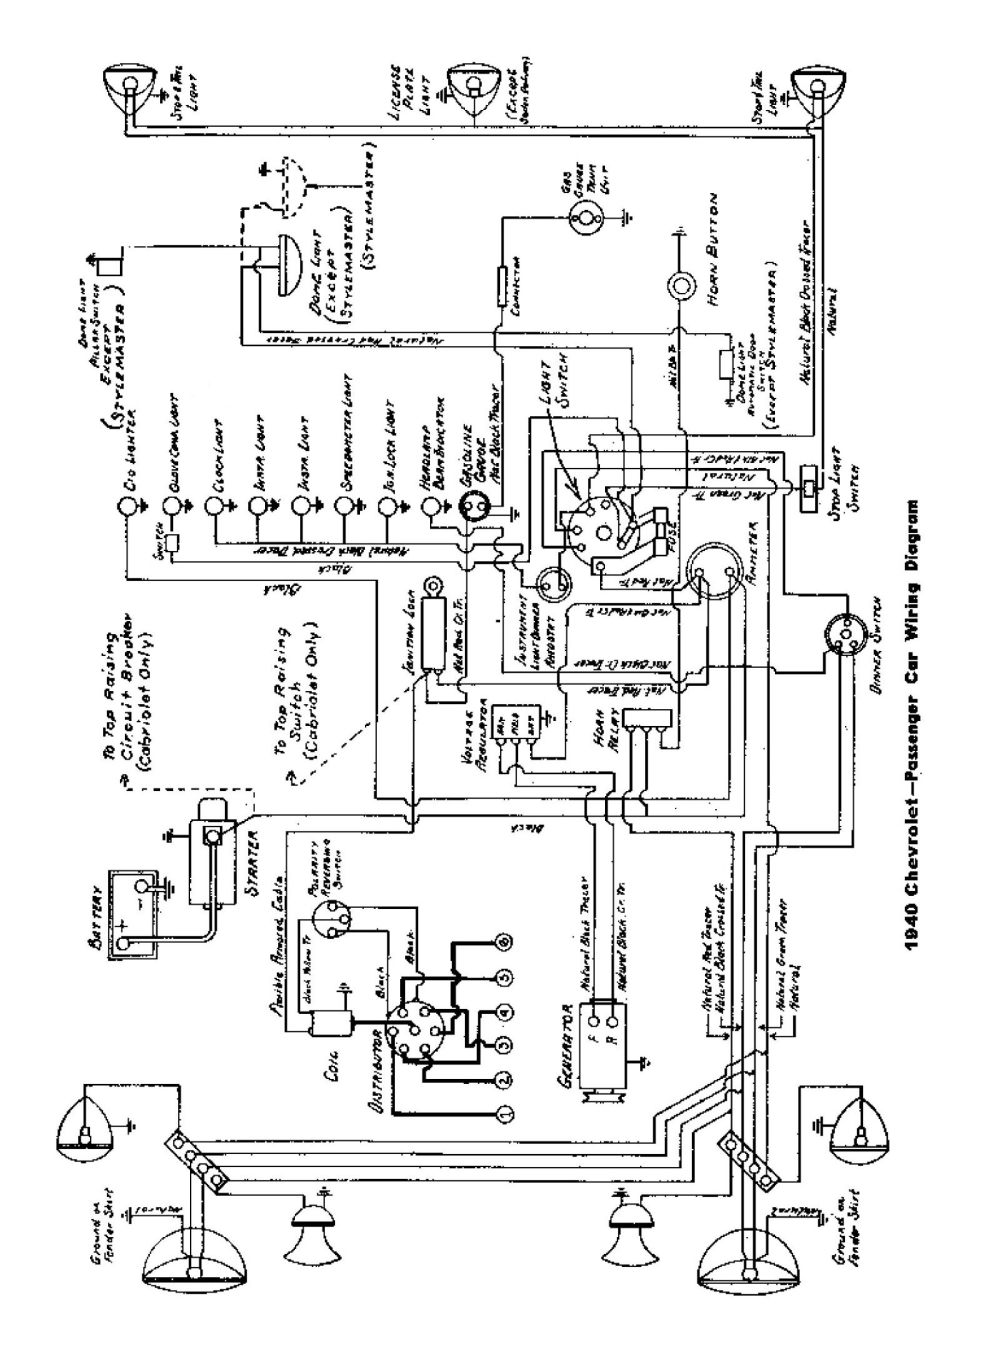 medium resolution of 1952 international engine diagram wiring diagram third level1952 international truck wiring diagram schematic wiring diagram ford